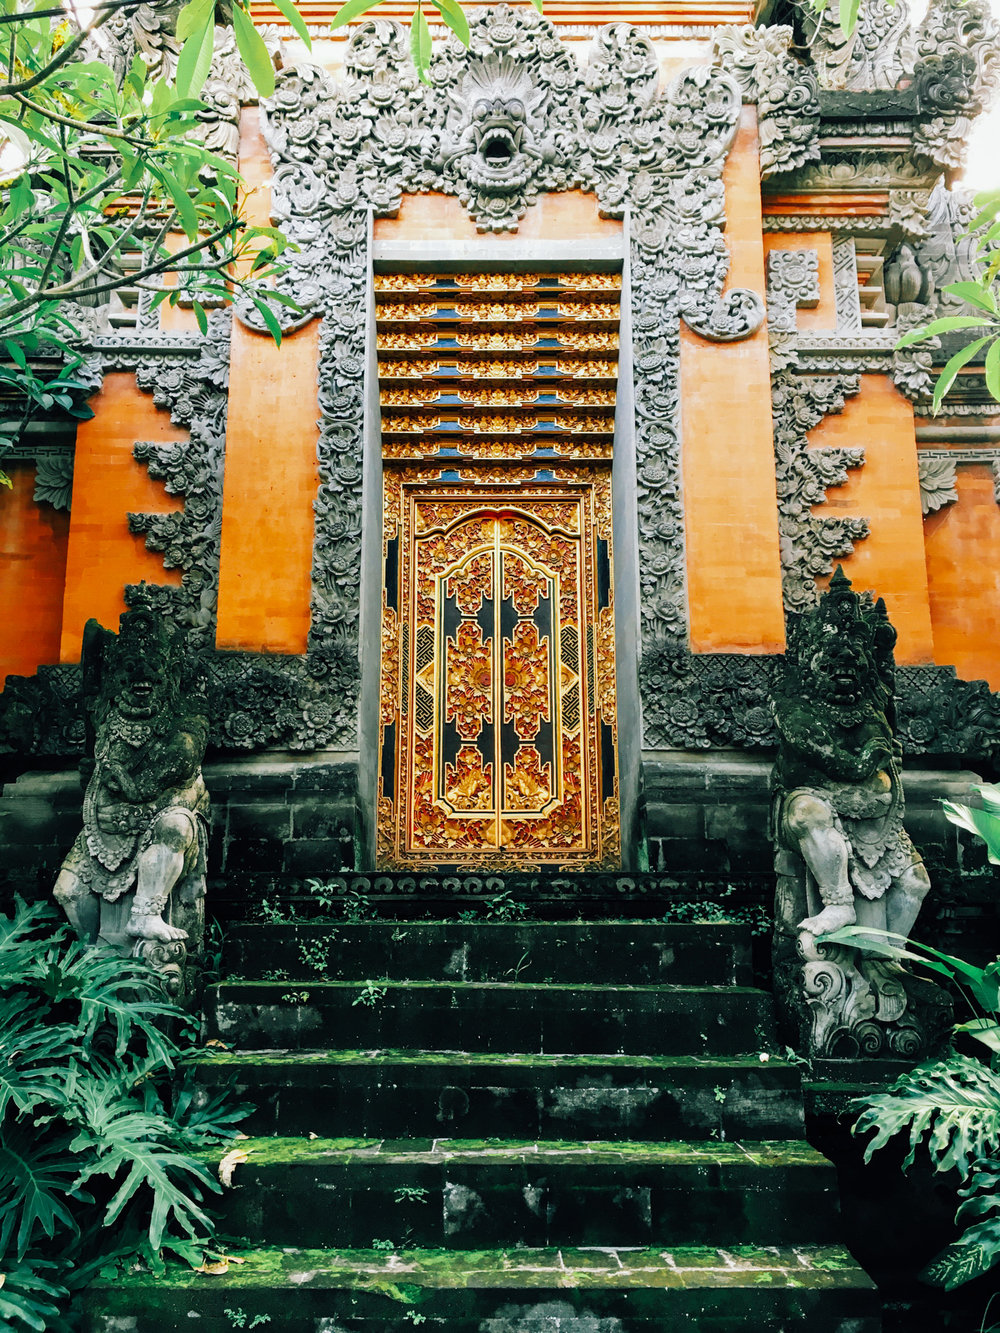 No shortage of temples to visit in Ubud.